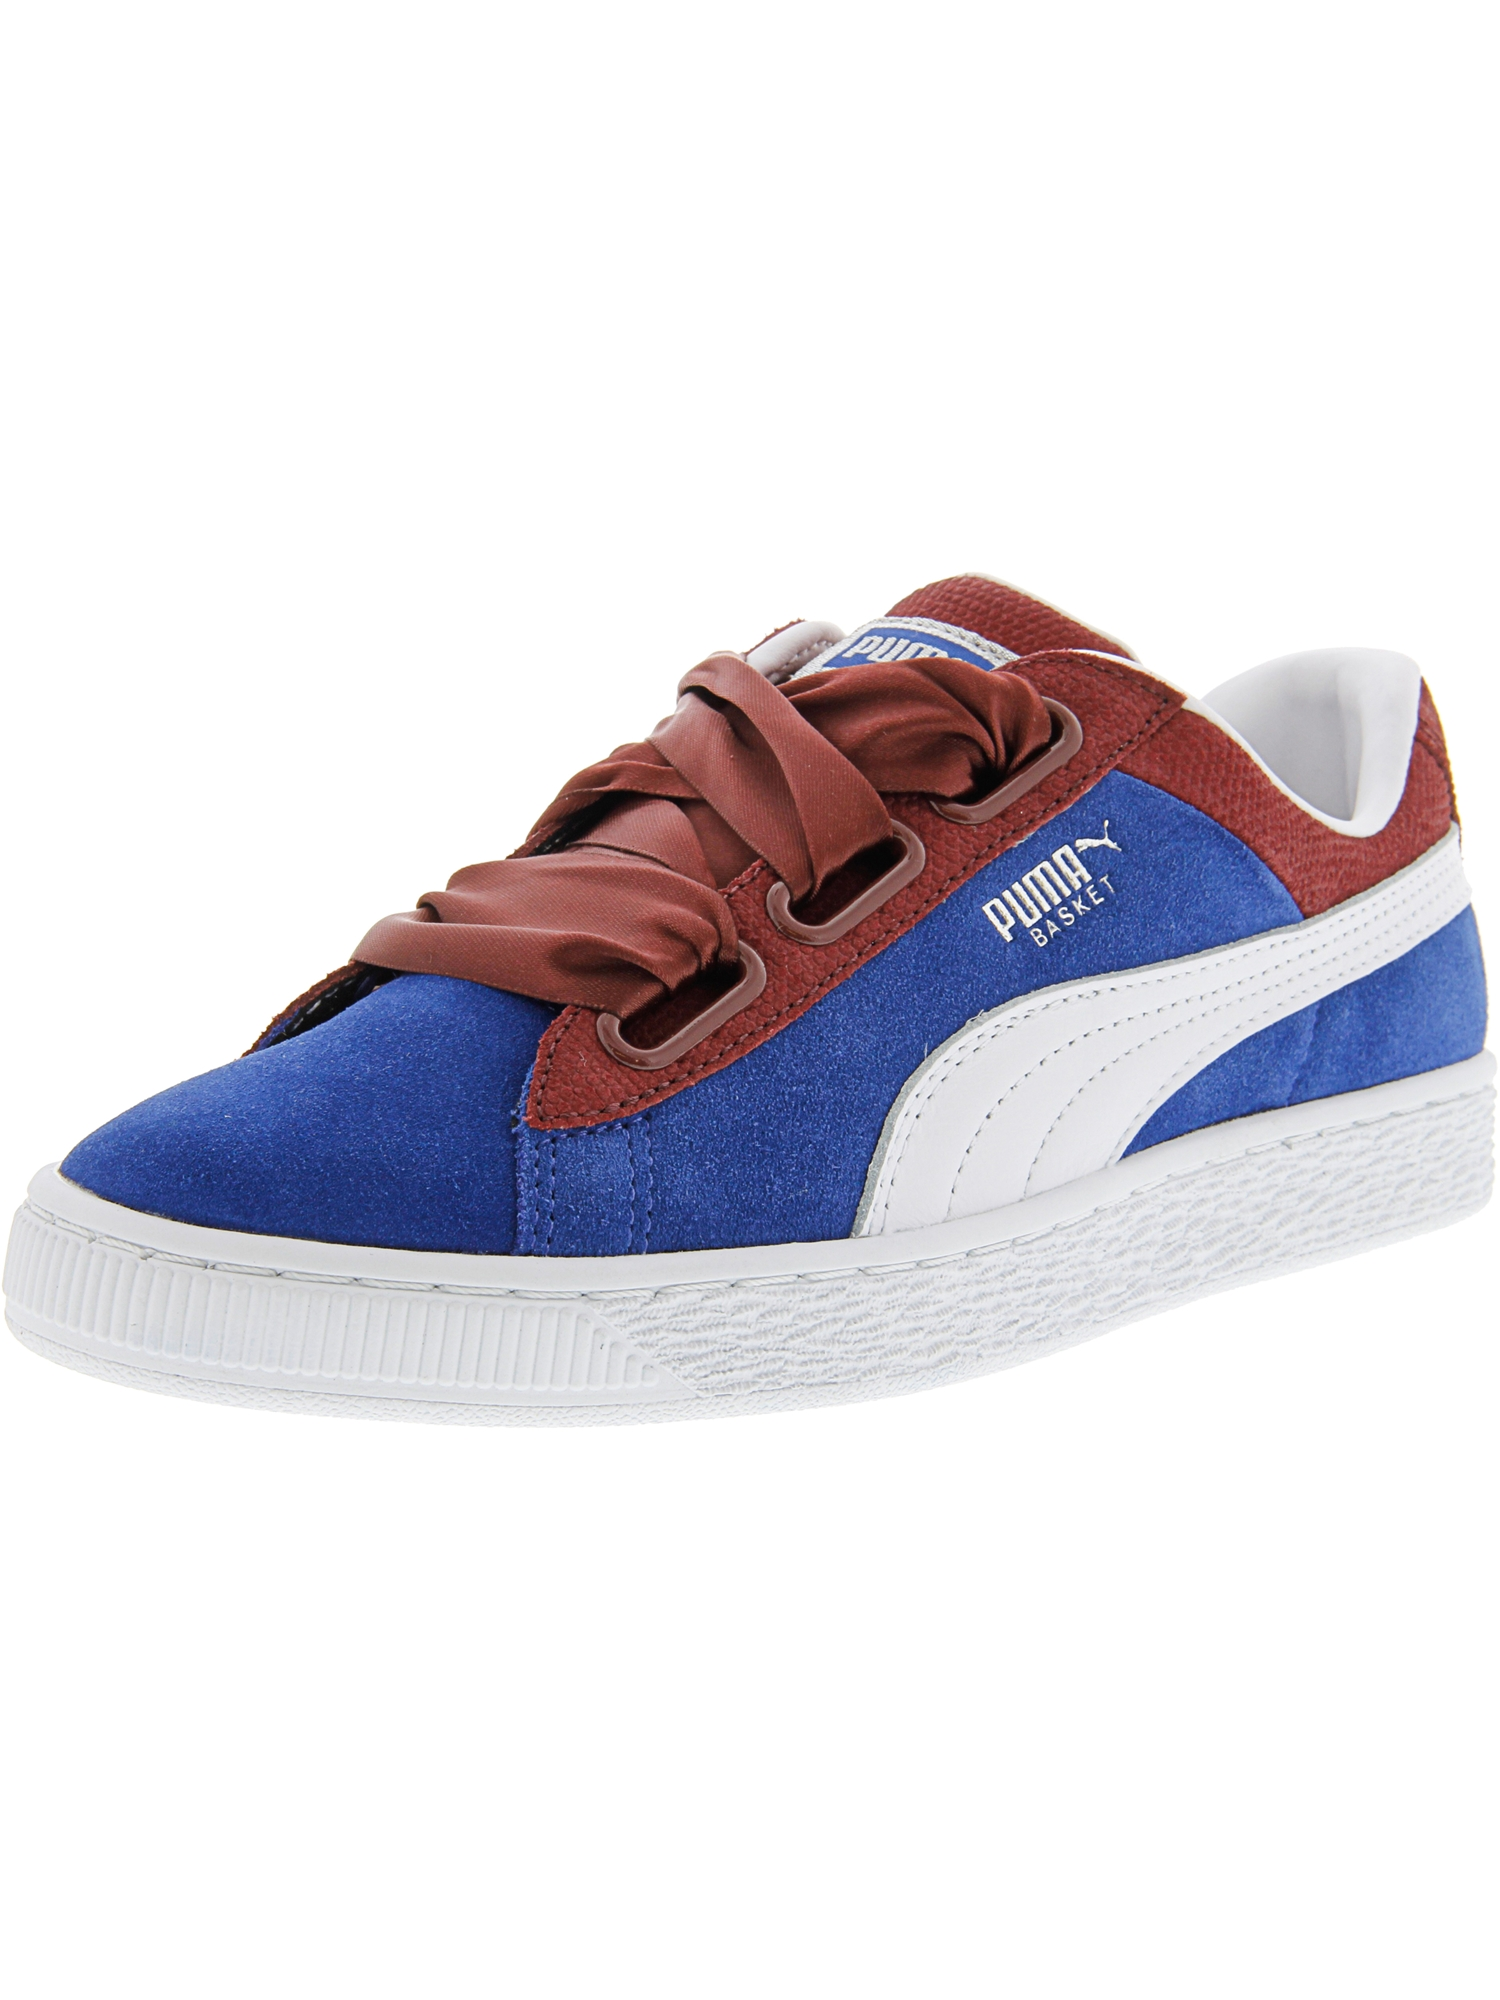 Puma Women's Basket Heart Cb True Blue / Cabaret Ankle-High Fashion Sneaker - 6M